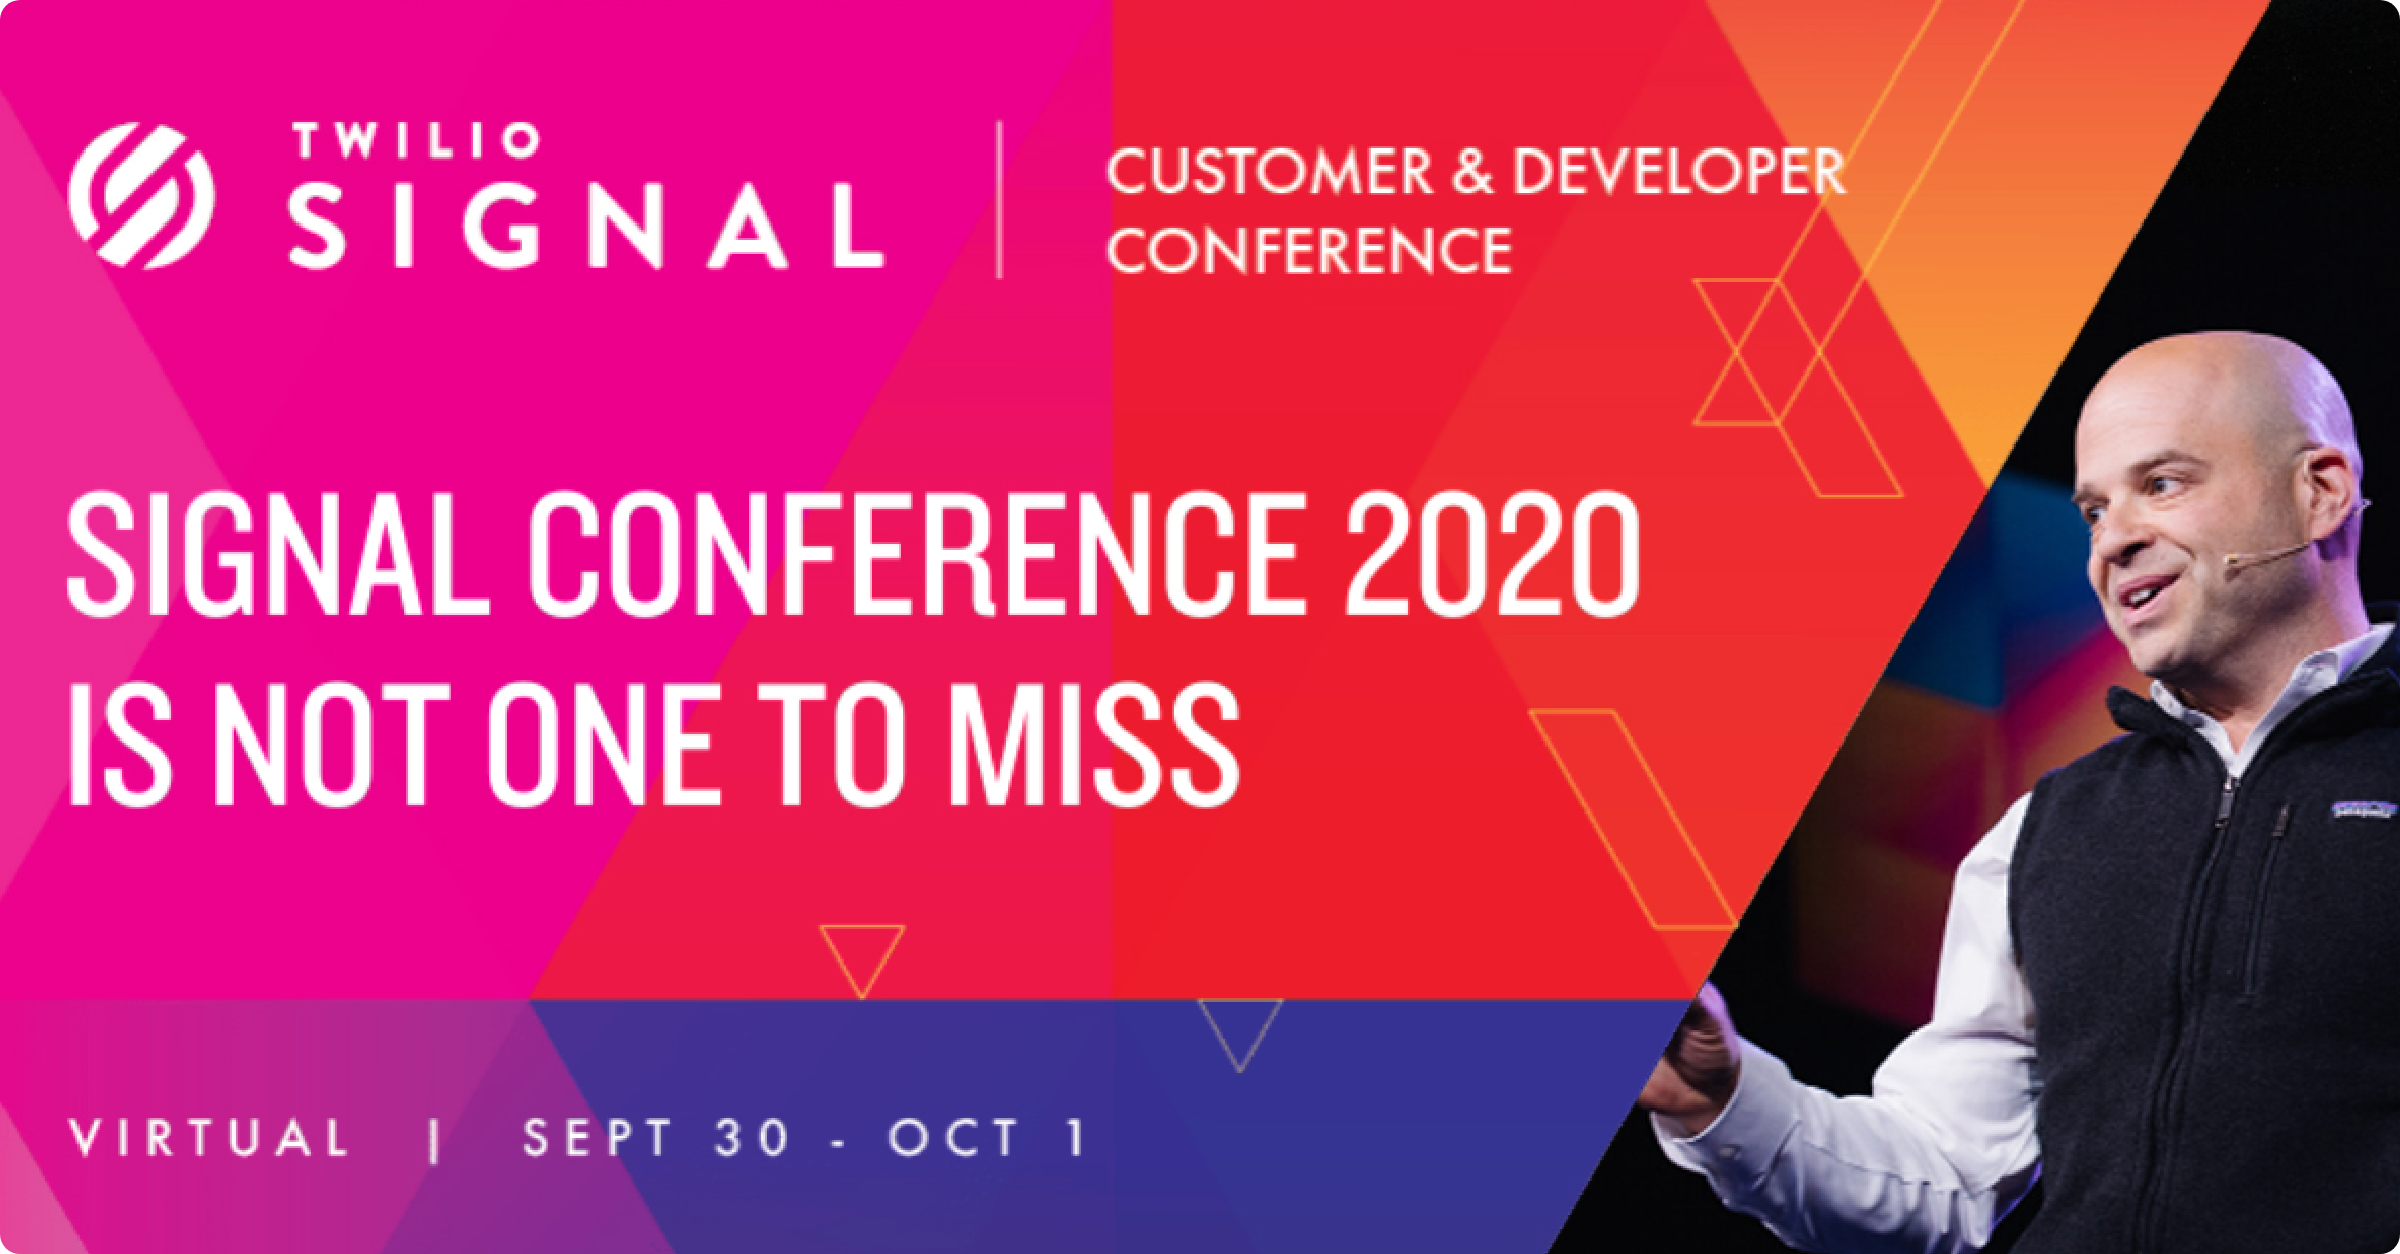 Twilio's annyal Signal Conference will be completely virtual